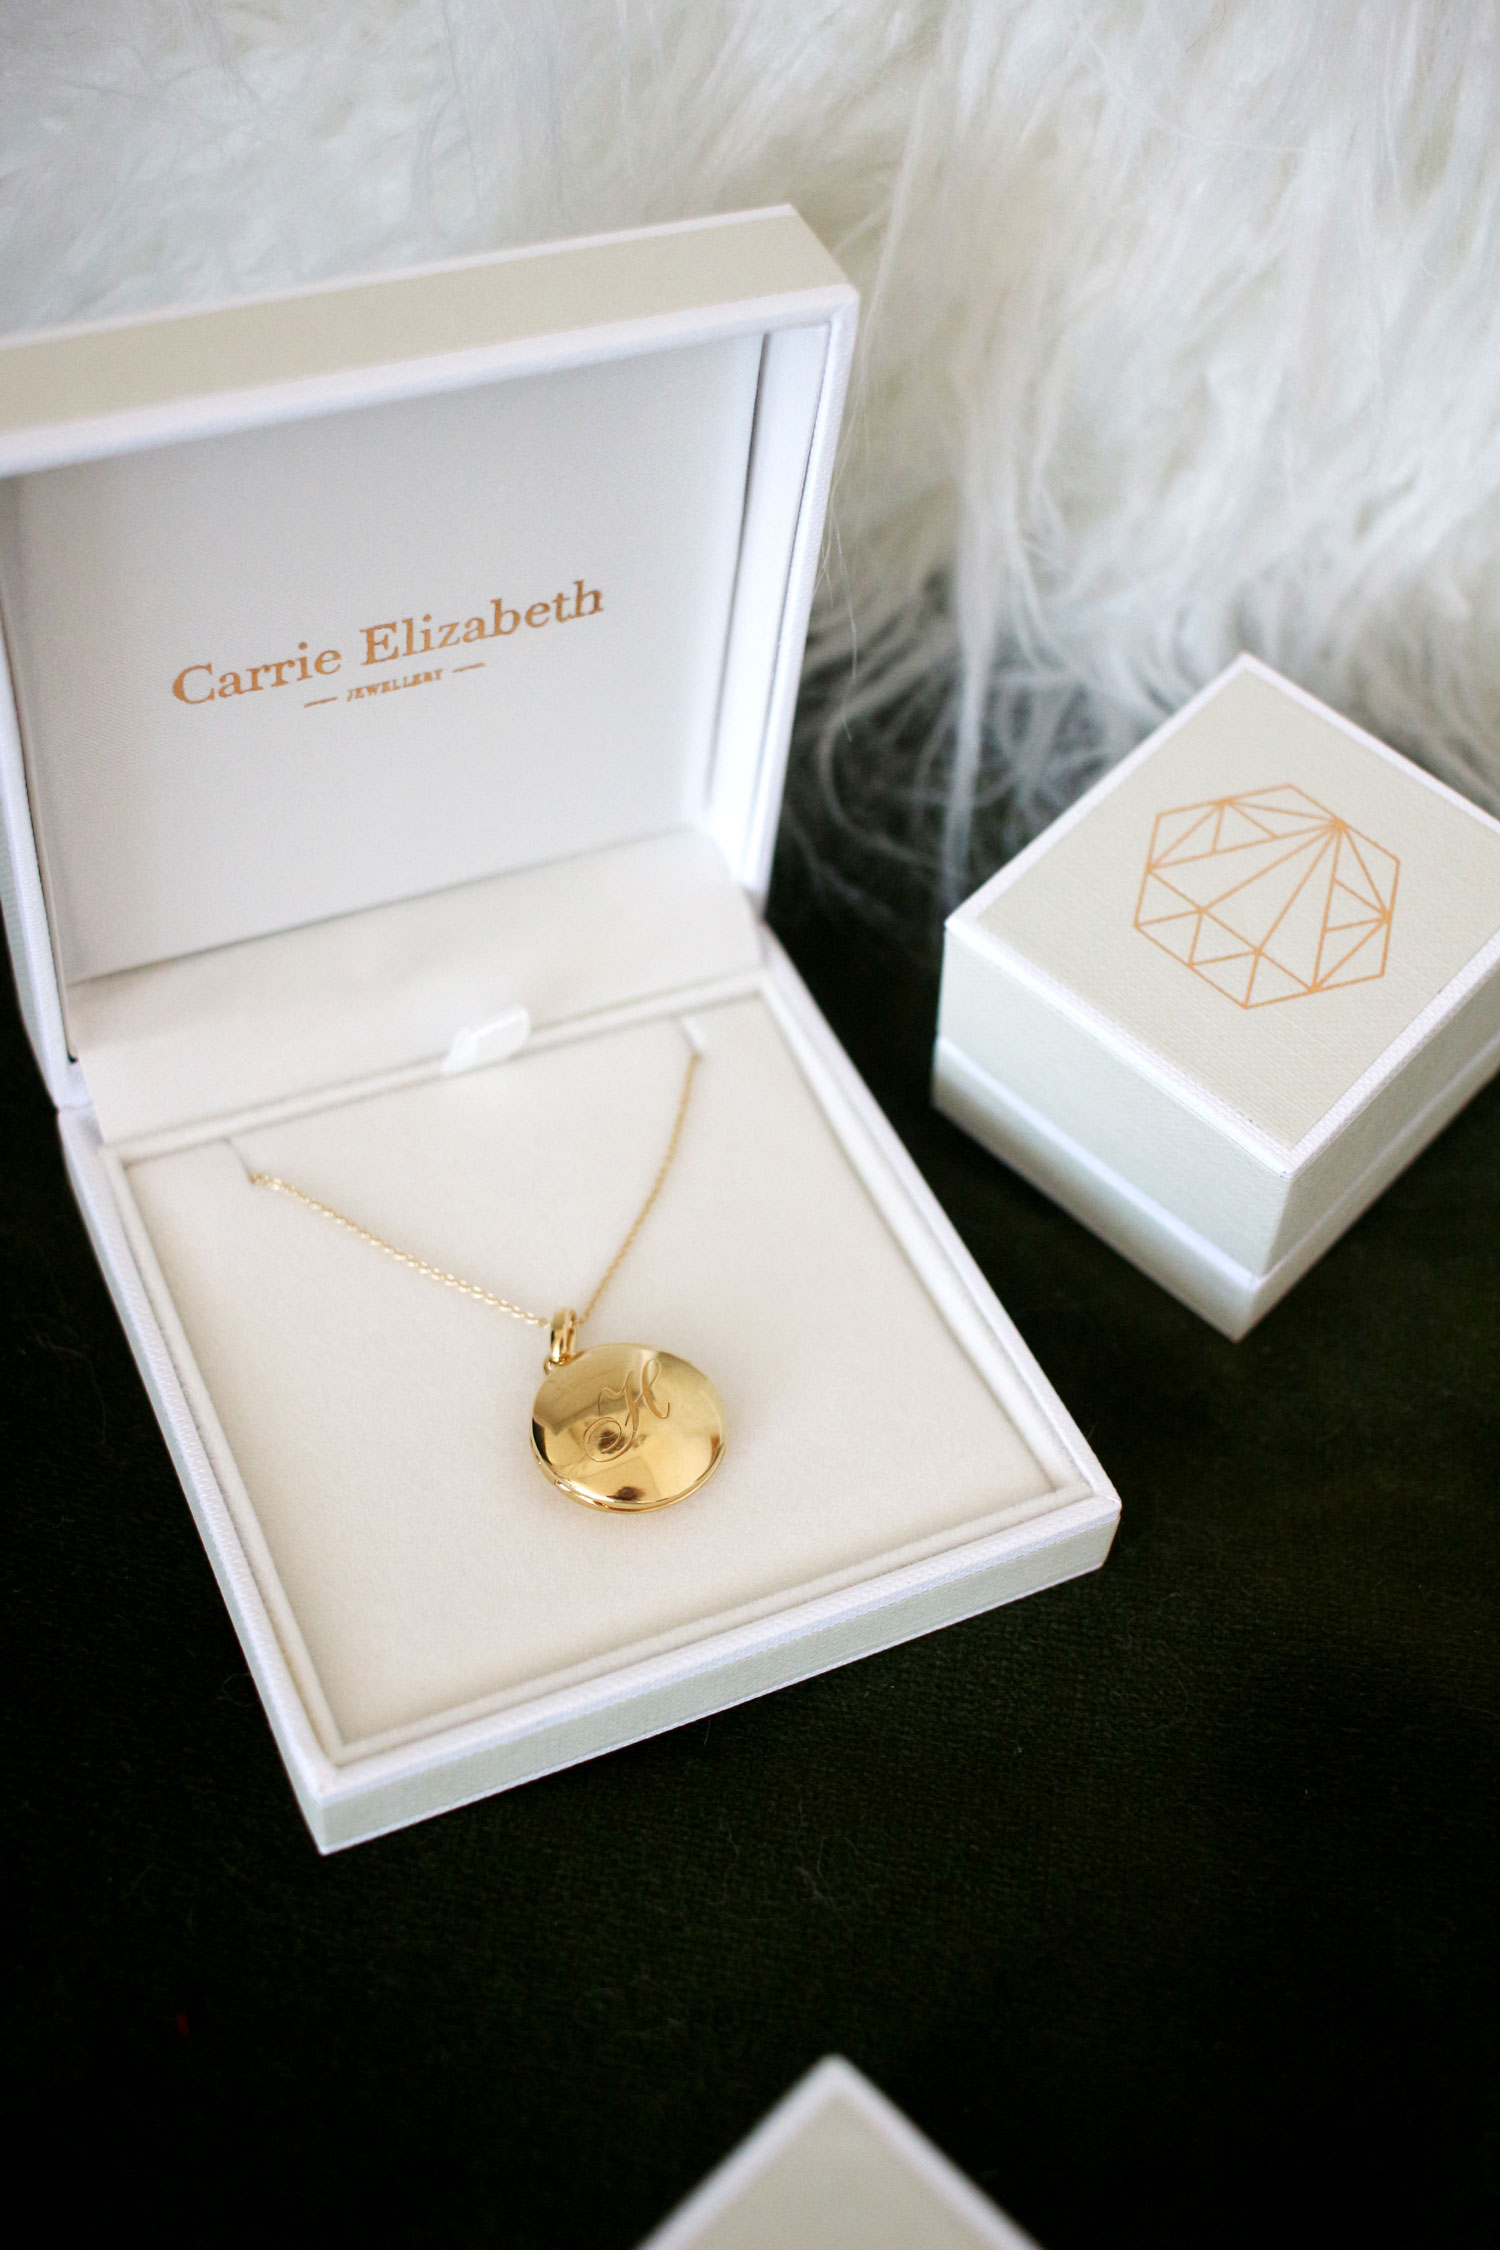 carrie-elizabeth-jewellery-review-affordable-diamonds-9ct-gold-5